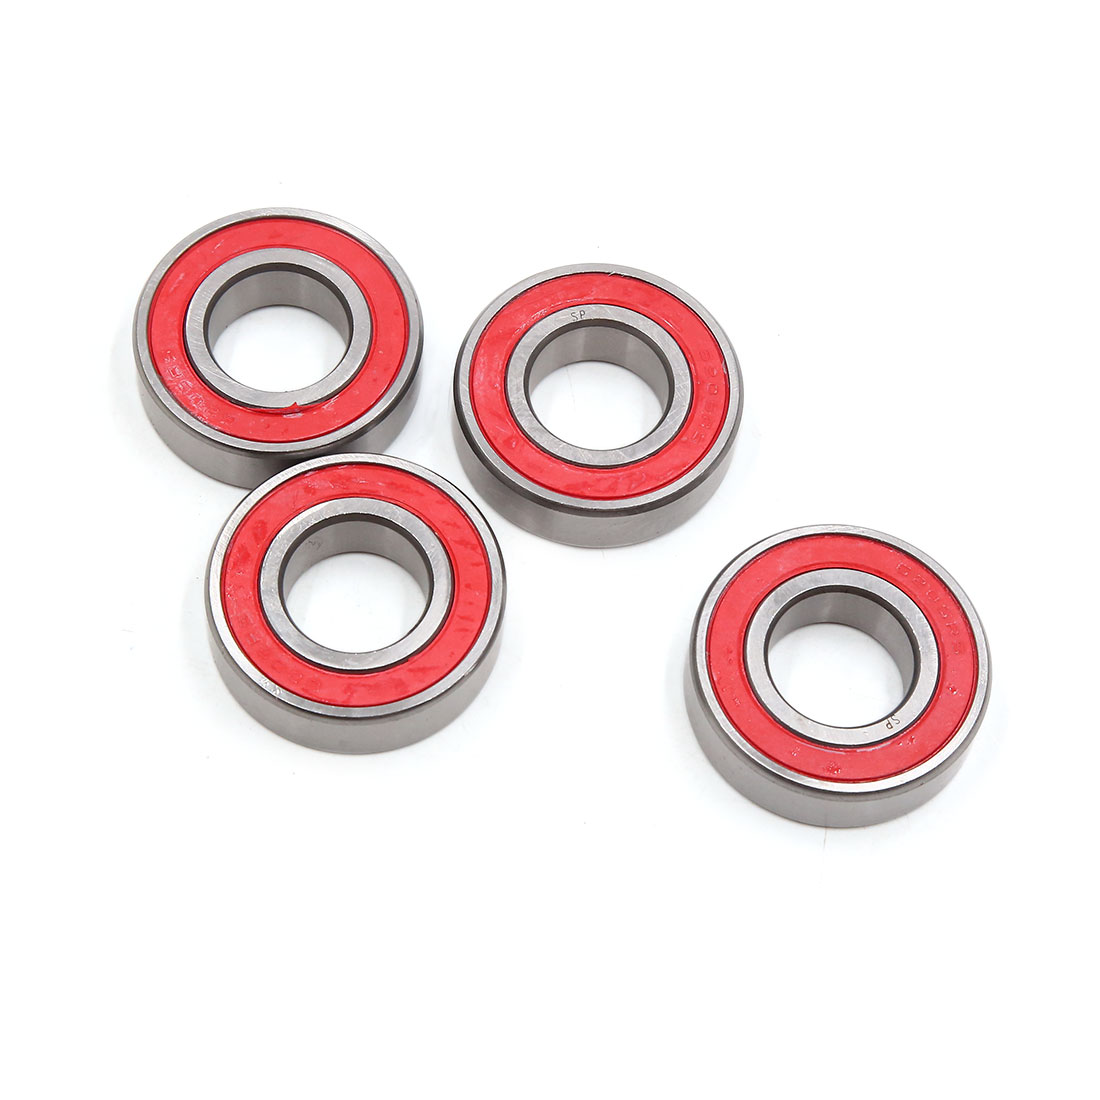 4pcs 6205-2RS Scooter Motorcycle Sealed Deep Groove Ball Bearing 52 x 25 x 15mm